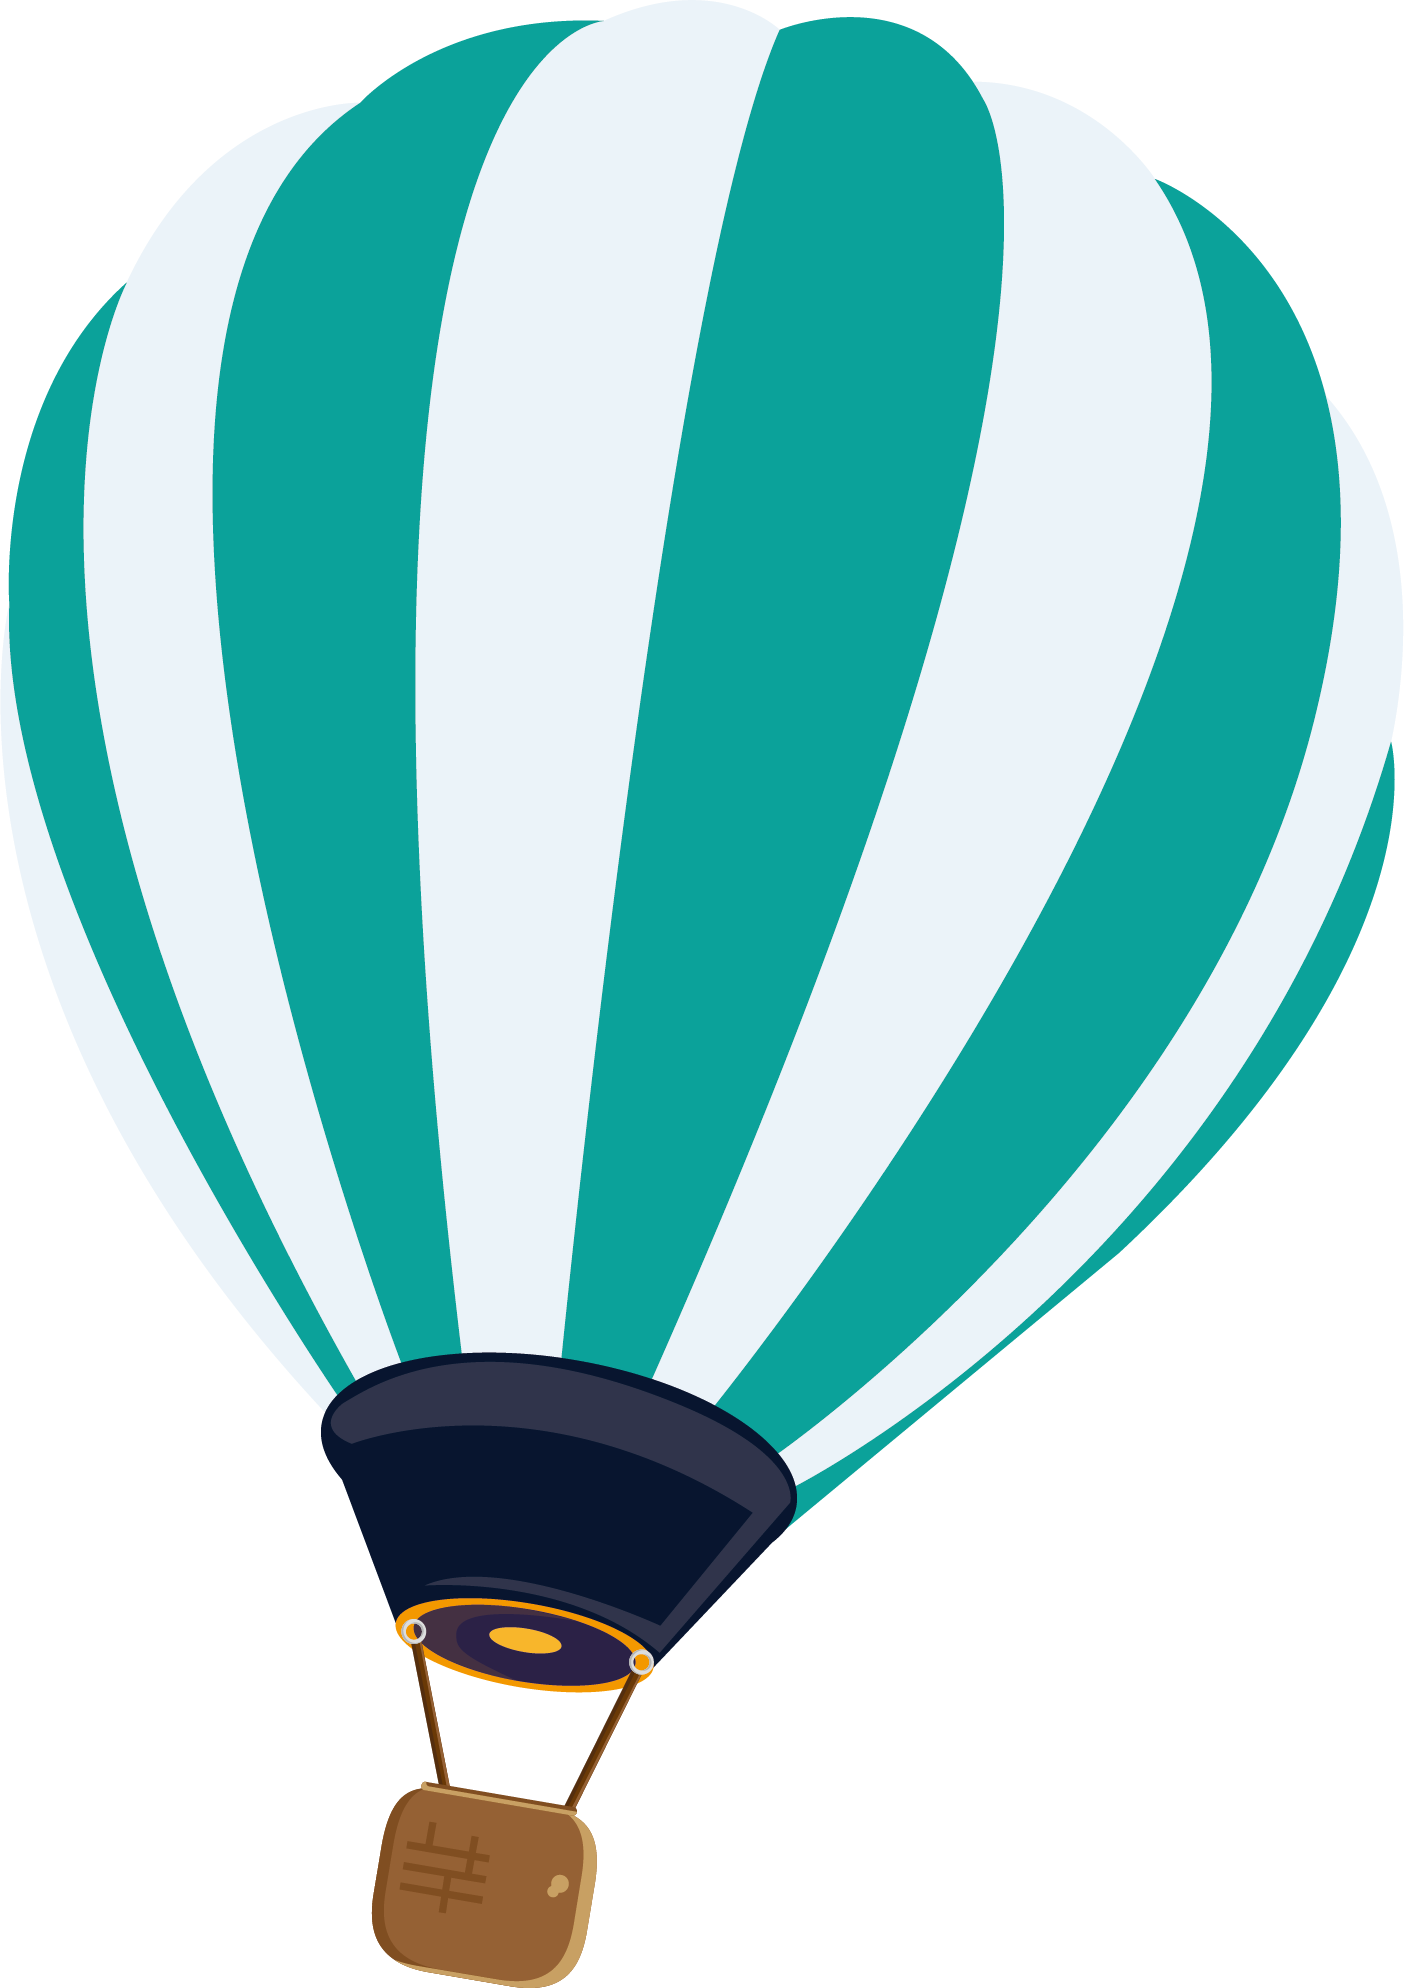 Hot air balloon vector png. Euclidean striped transprent free